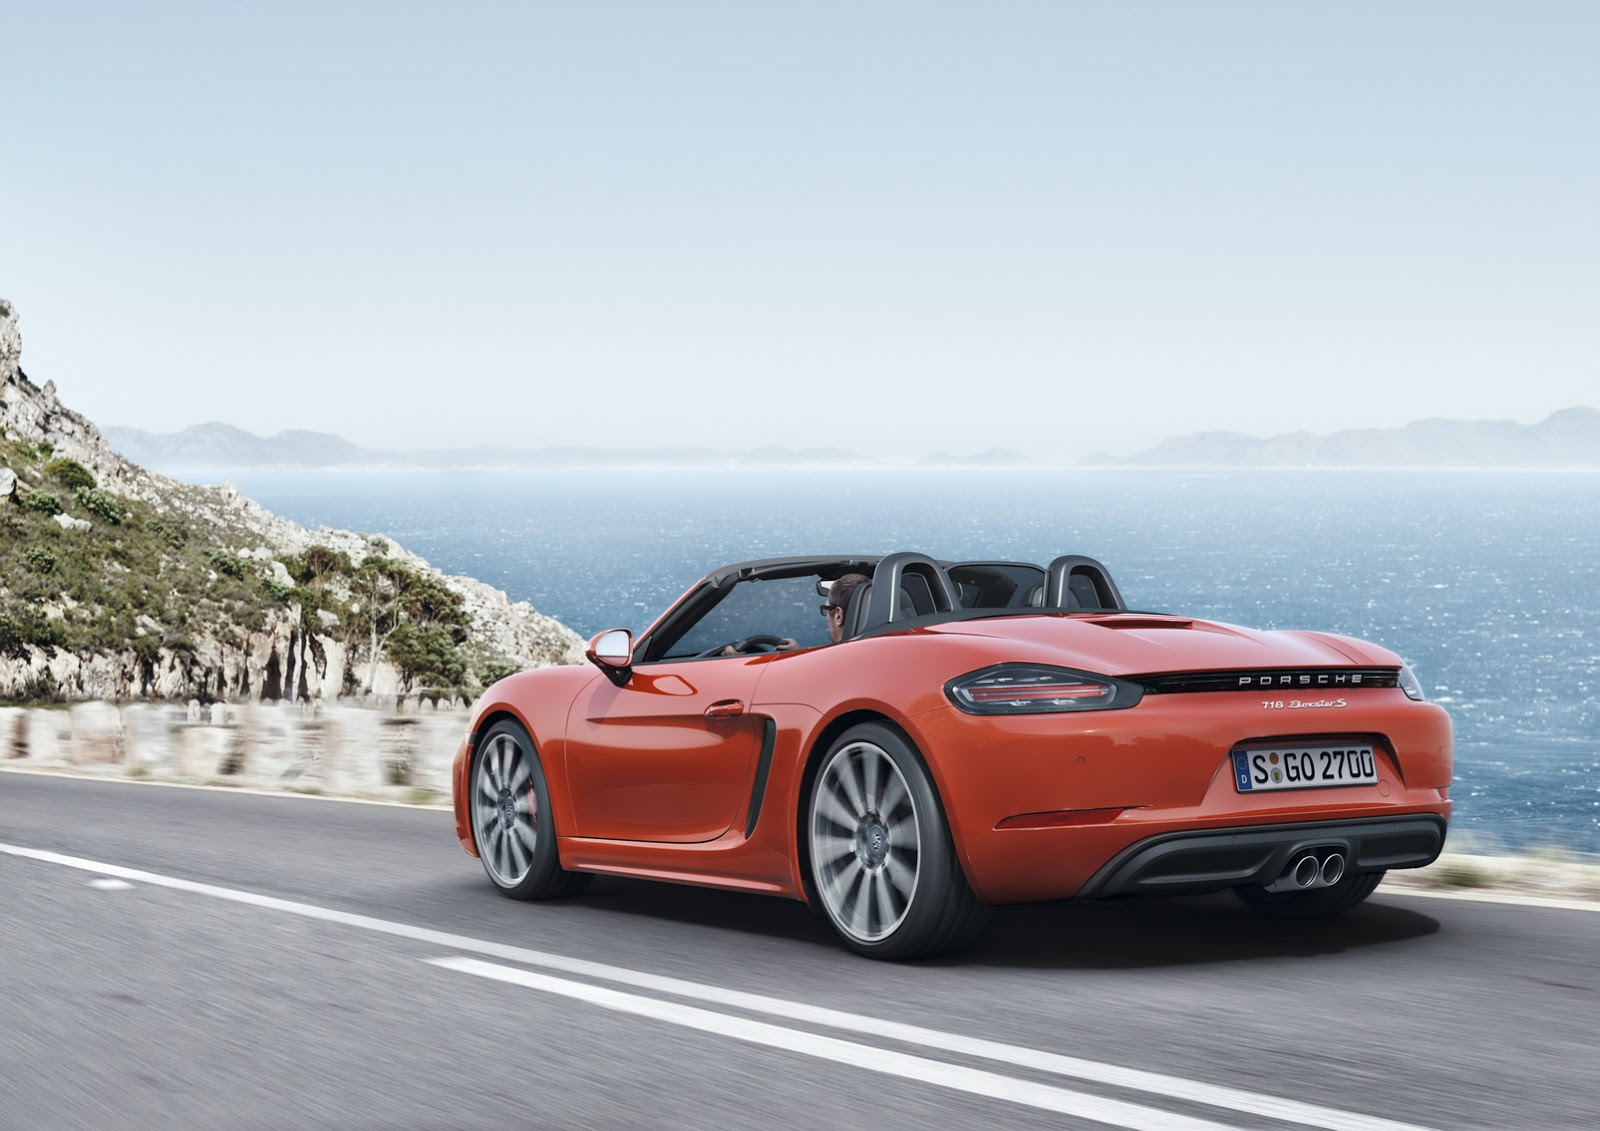 Porsche 718 Boxster Revealed With New Turbo D 4 Cylinder